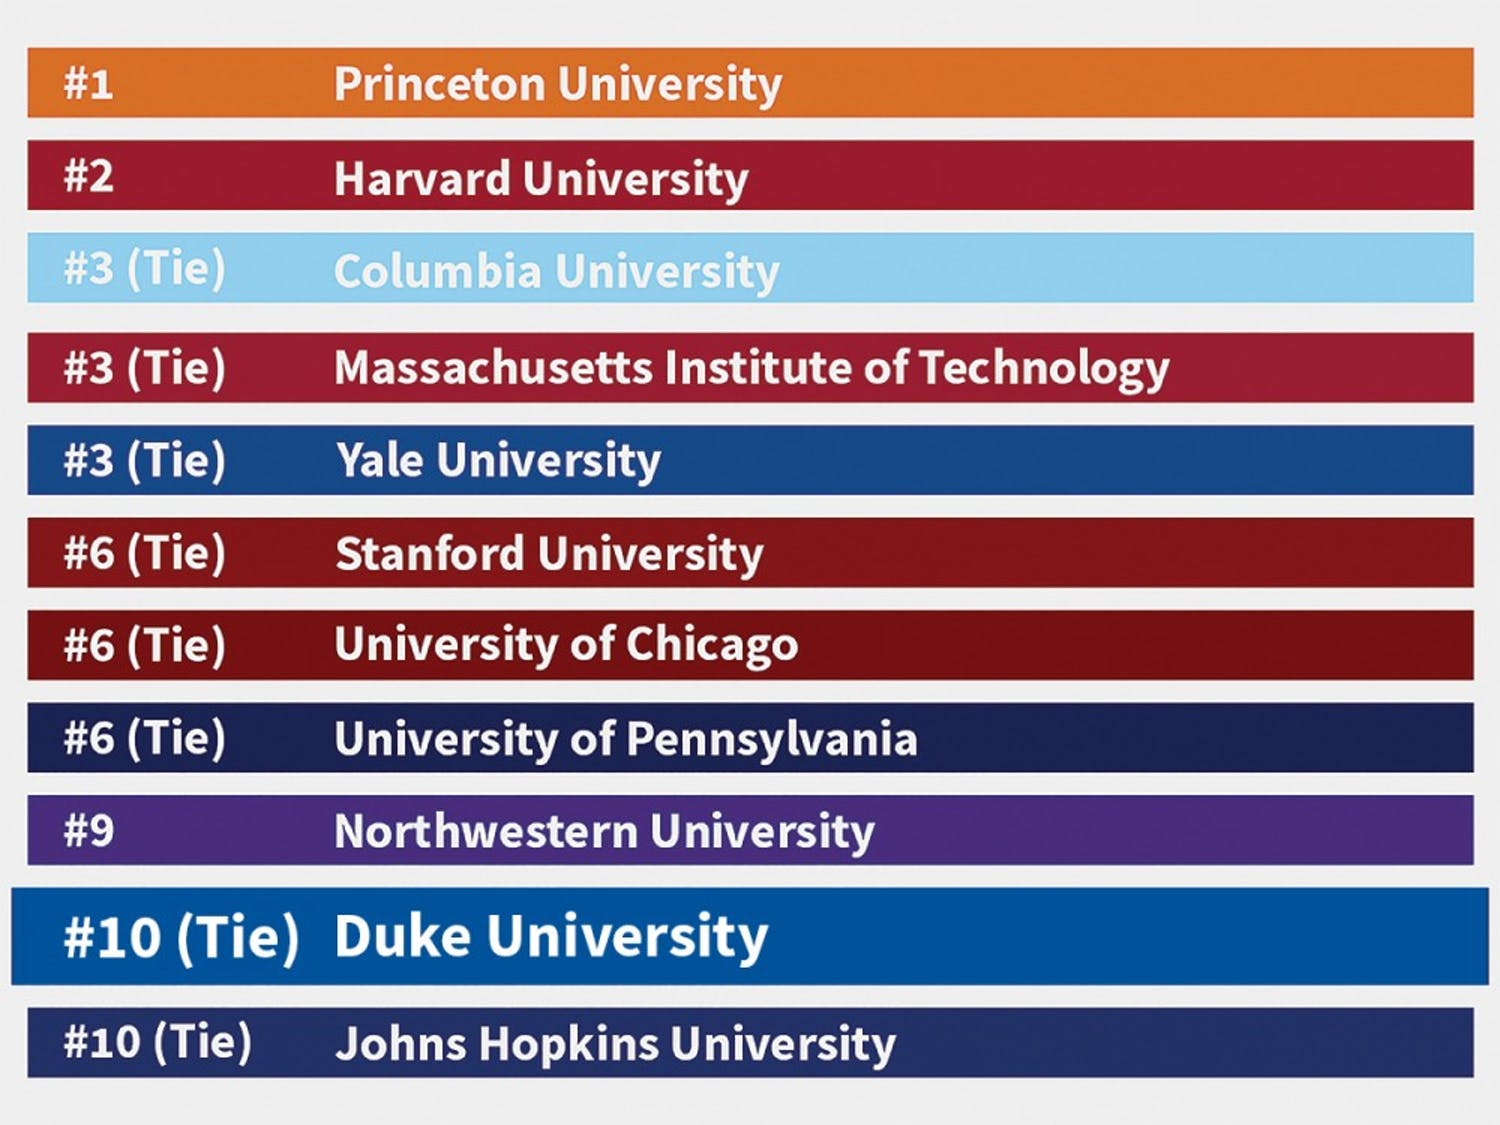 The U.S. News & World Report 2020 college rankings.